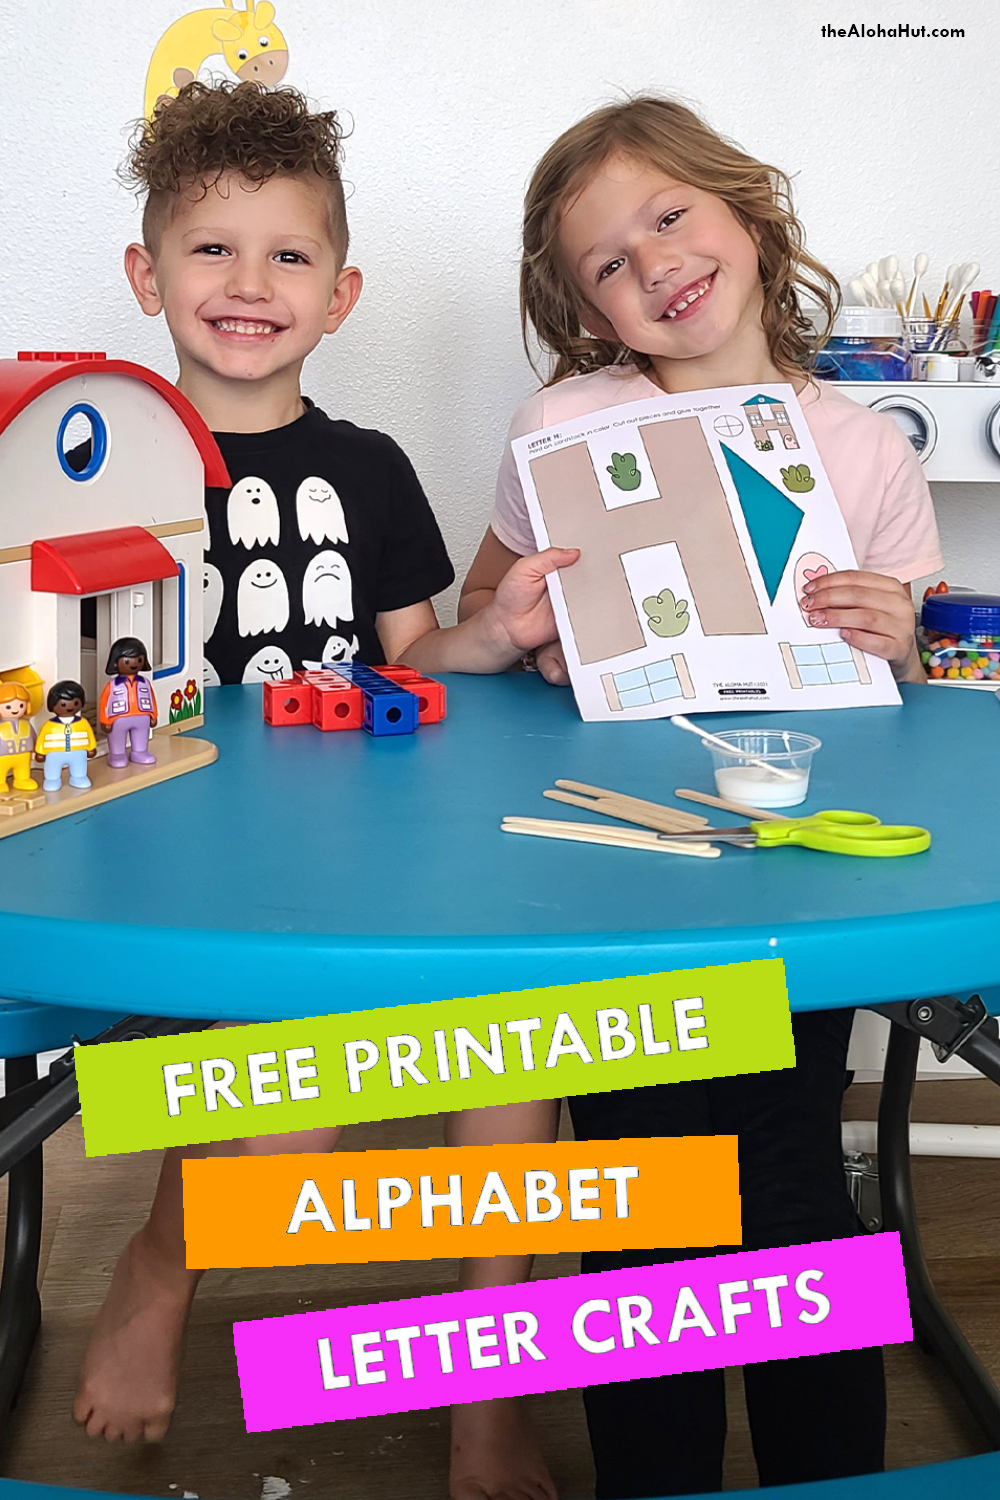 Alphabet Letter Crafts - Letter H - free printable 3 by the Aloha Hut